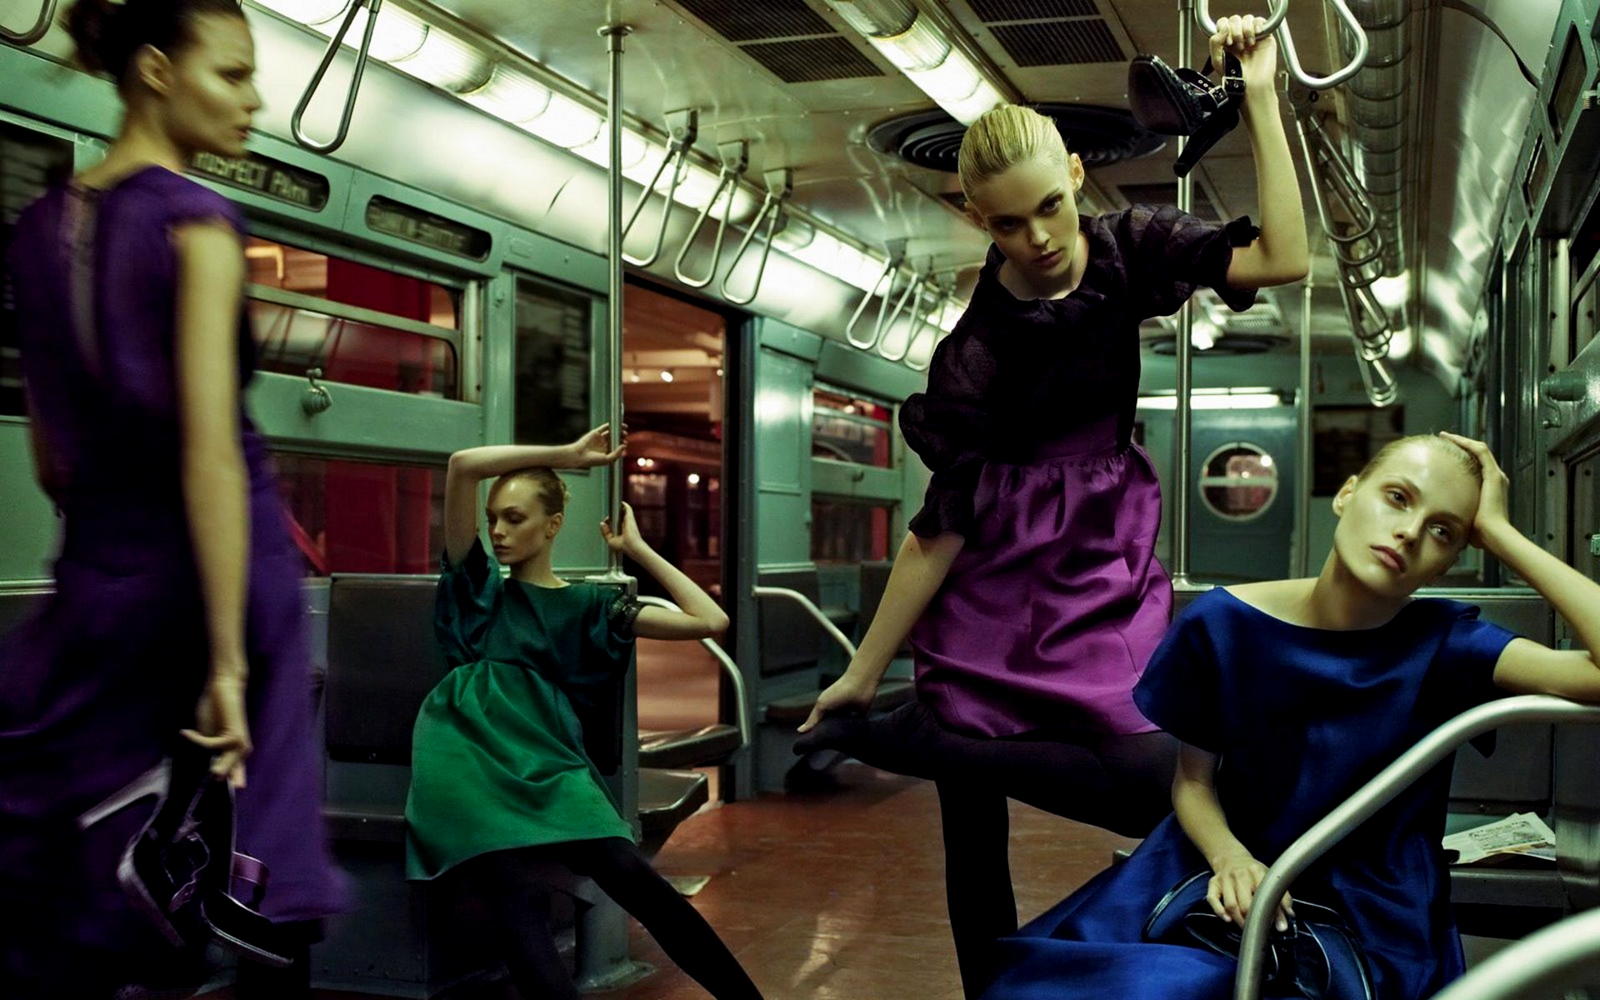 Dolce-and-Gabbana-Models-in-Subway